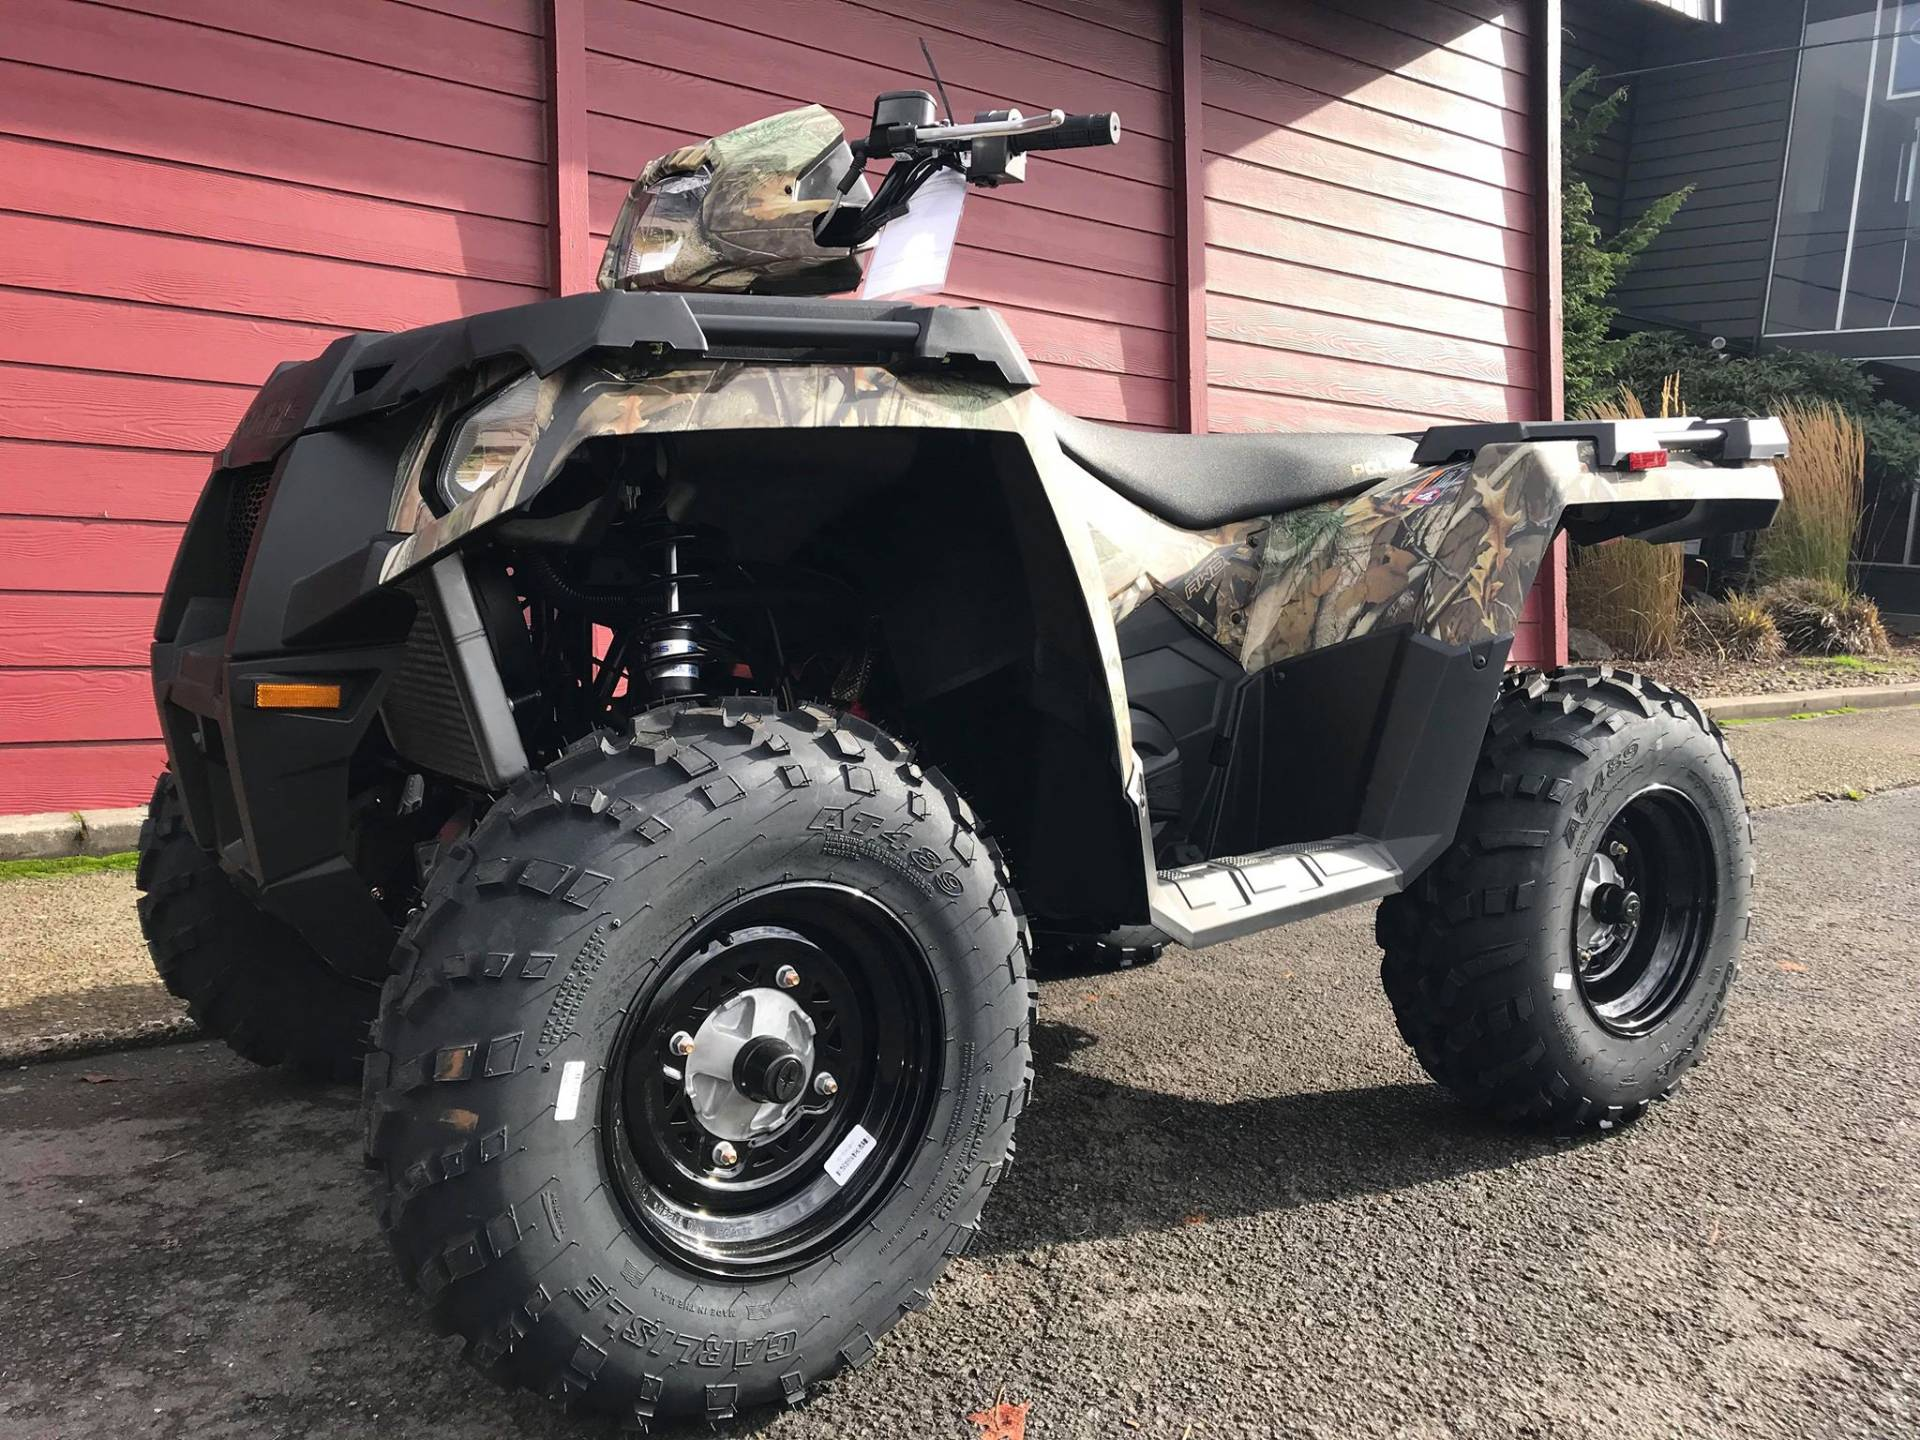 2019 Polaris Sportsman 570 Camo in Tualatin, Oregon - Photo 2